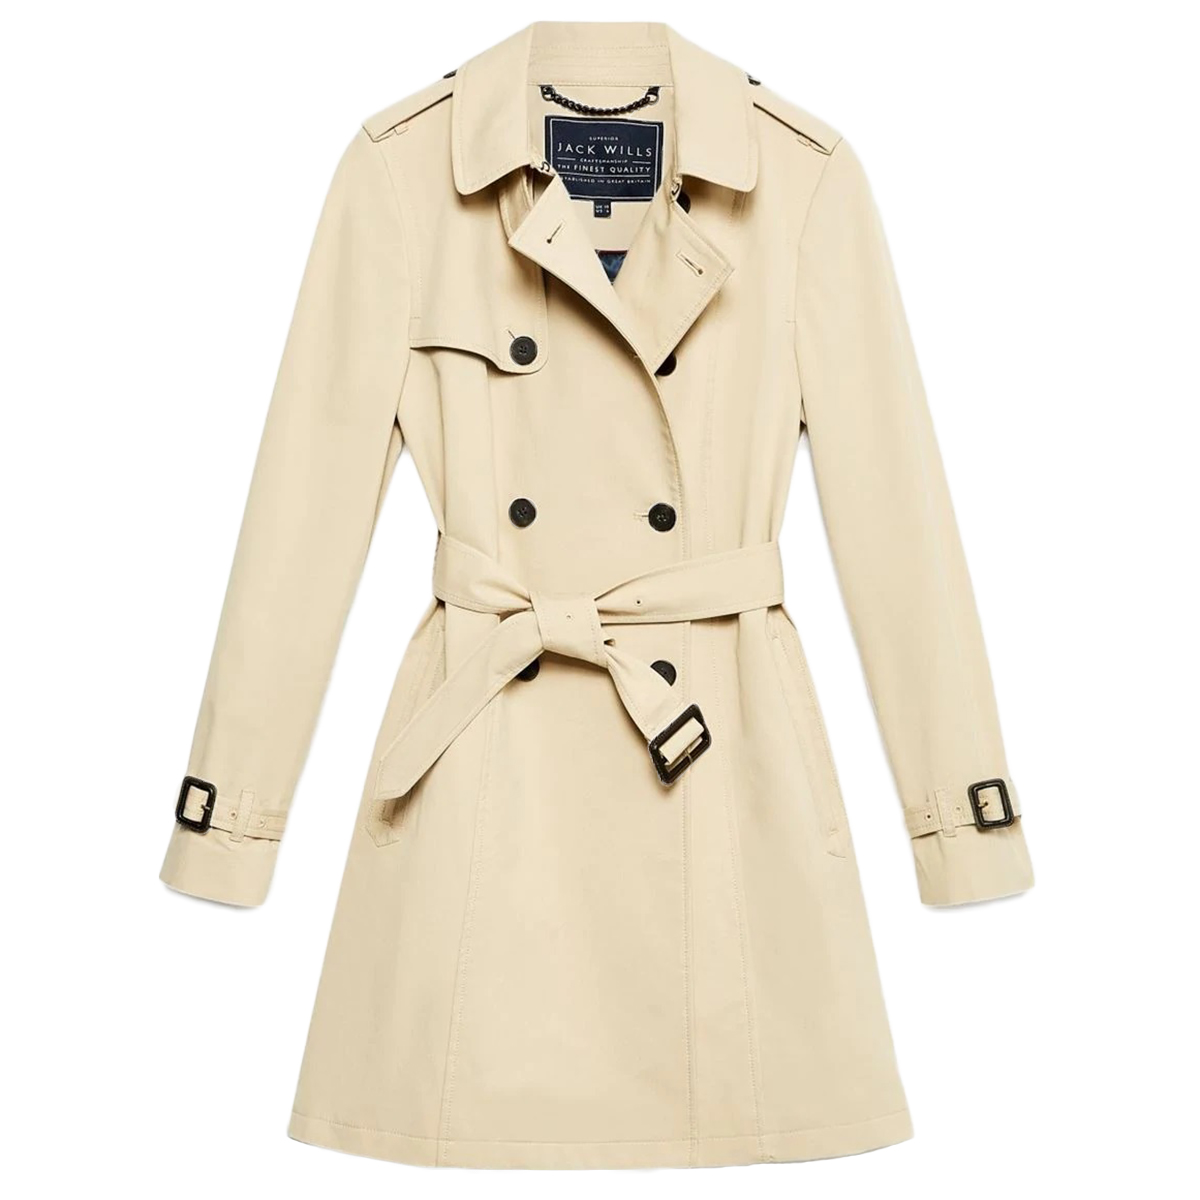 Jack Wills Women's Ambrose Trench Coat - White, 6